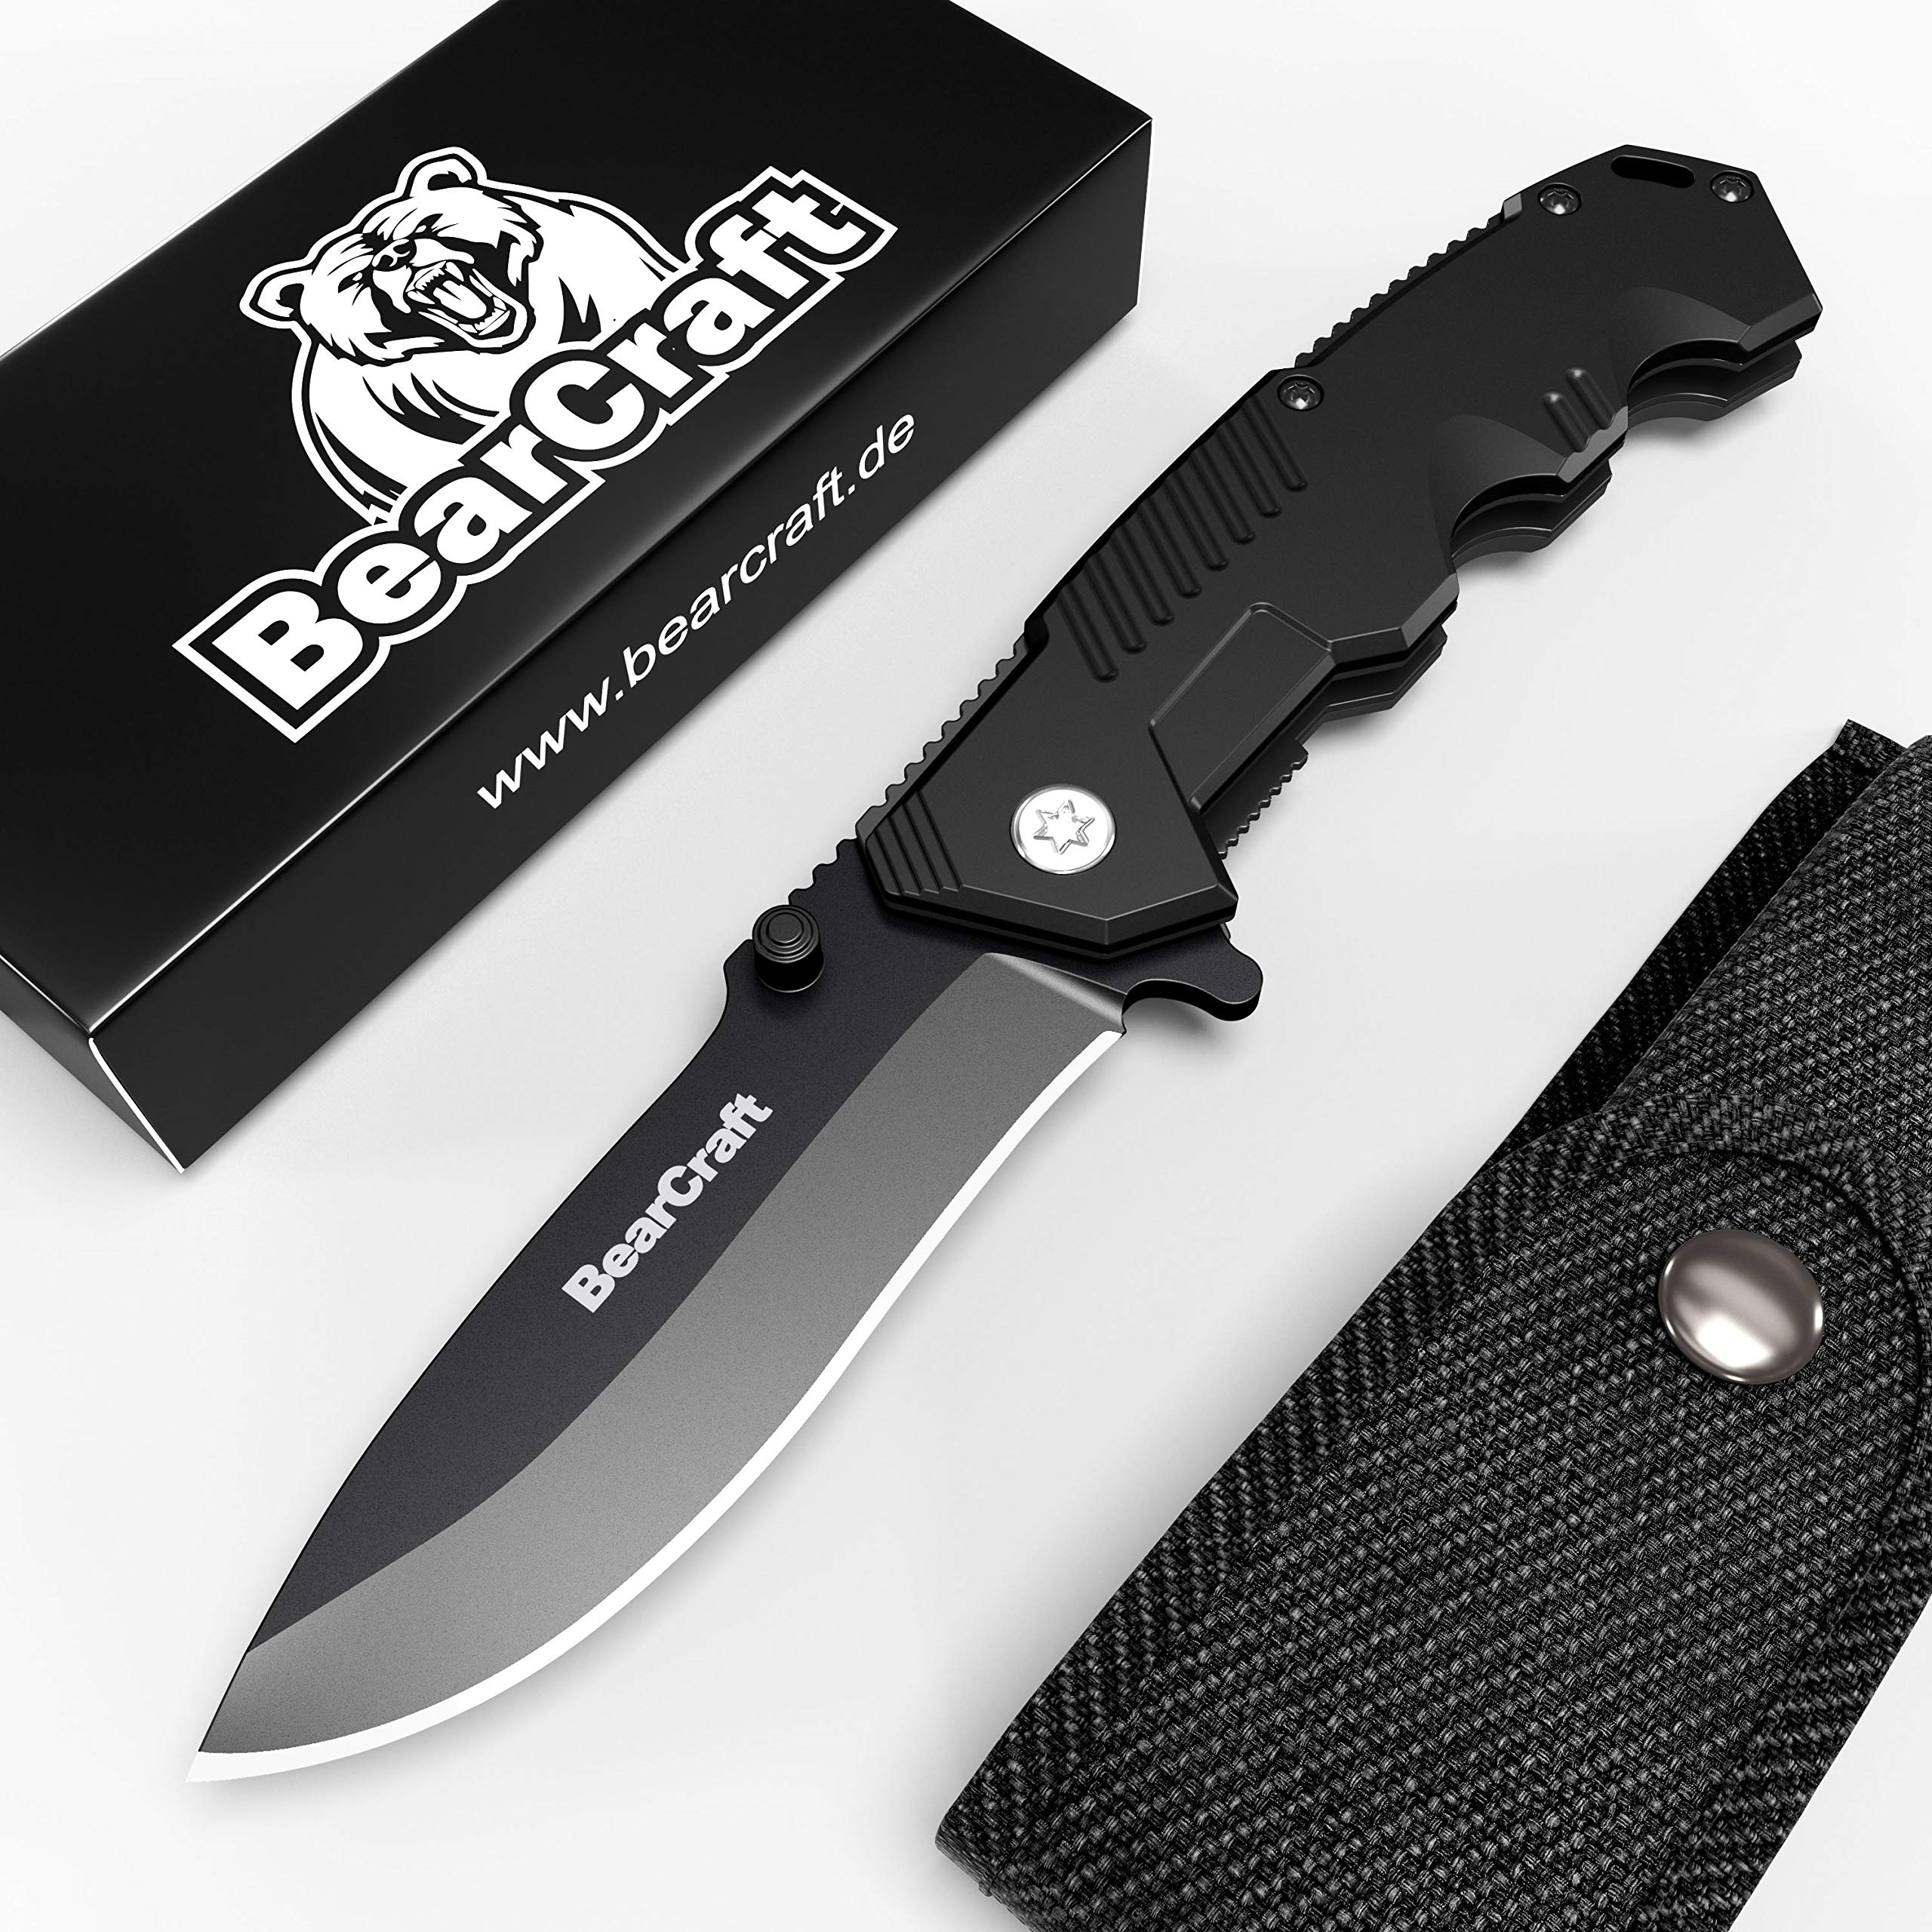 BearCraft Folding Knife in Matt Black inclusiveFREE eBook | Outdoor Survival Pocket Knife | Small one-Hand Knife with Stainless Steel Blade and Aluminum Handle| Perfect for Work Hiking Camping by BearCraft (Image #3)